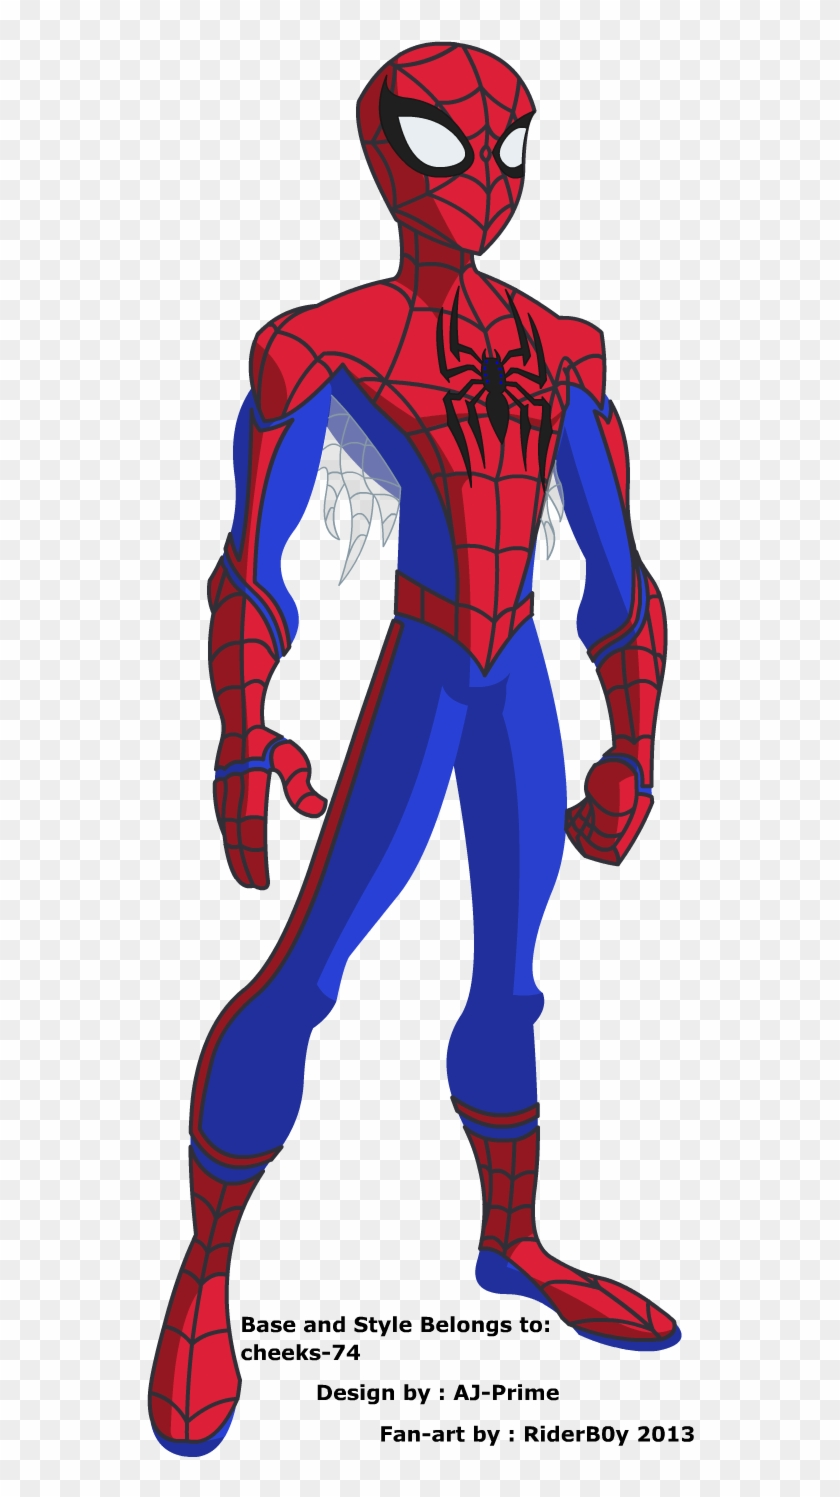 Spider Man Suit Drawing : spider, drawing, Spiderman, Drawing, Spectacular, Spider, Suits, Transparent, Clipart, Images, Download